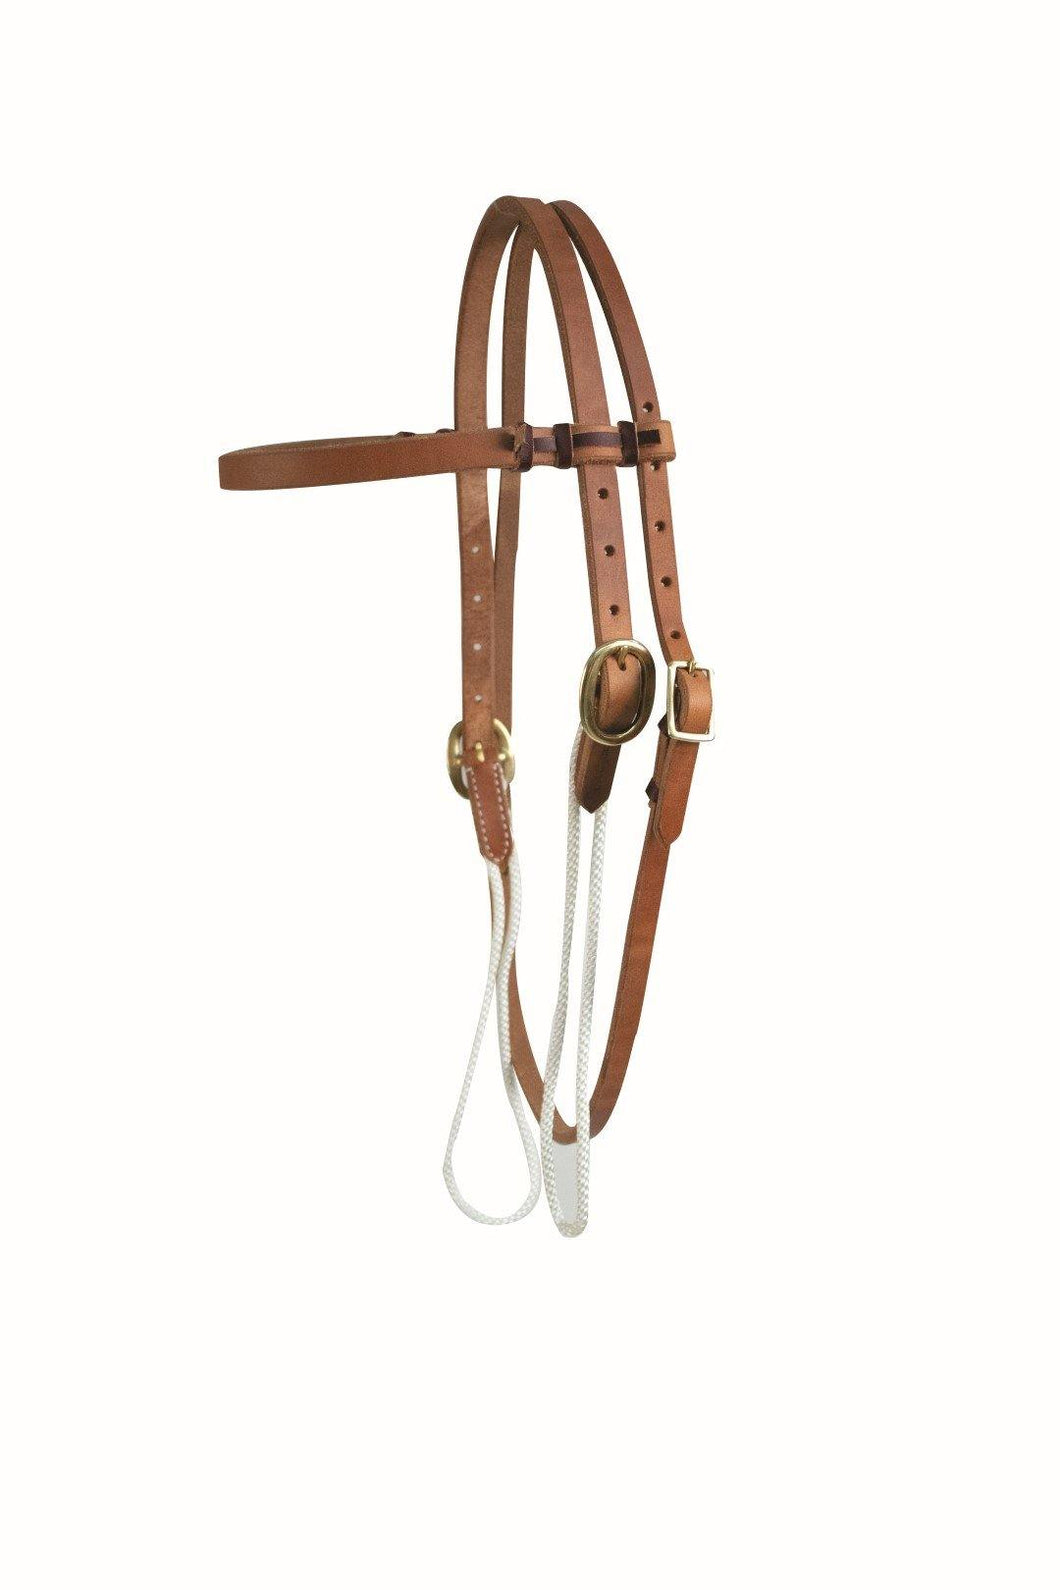 Harness Leather Sliding Cheek Browband Headstall